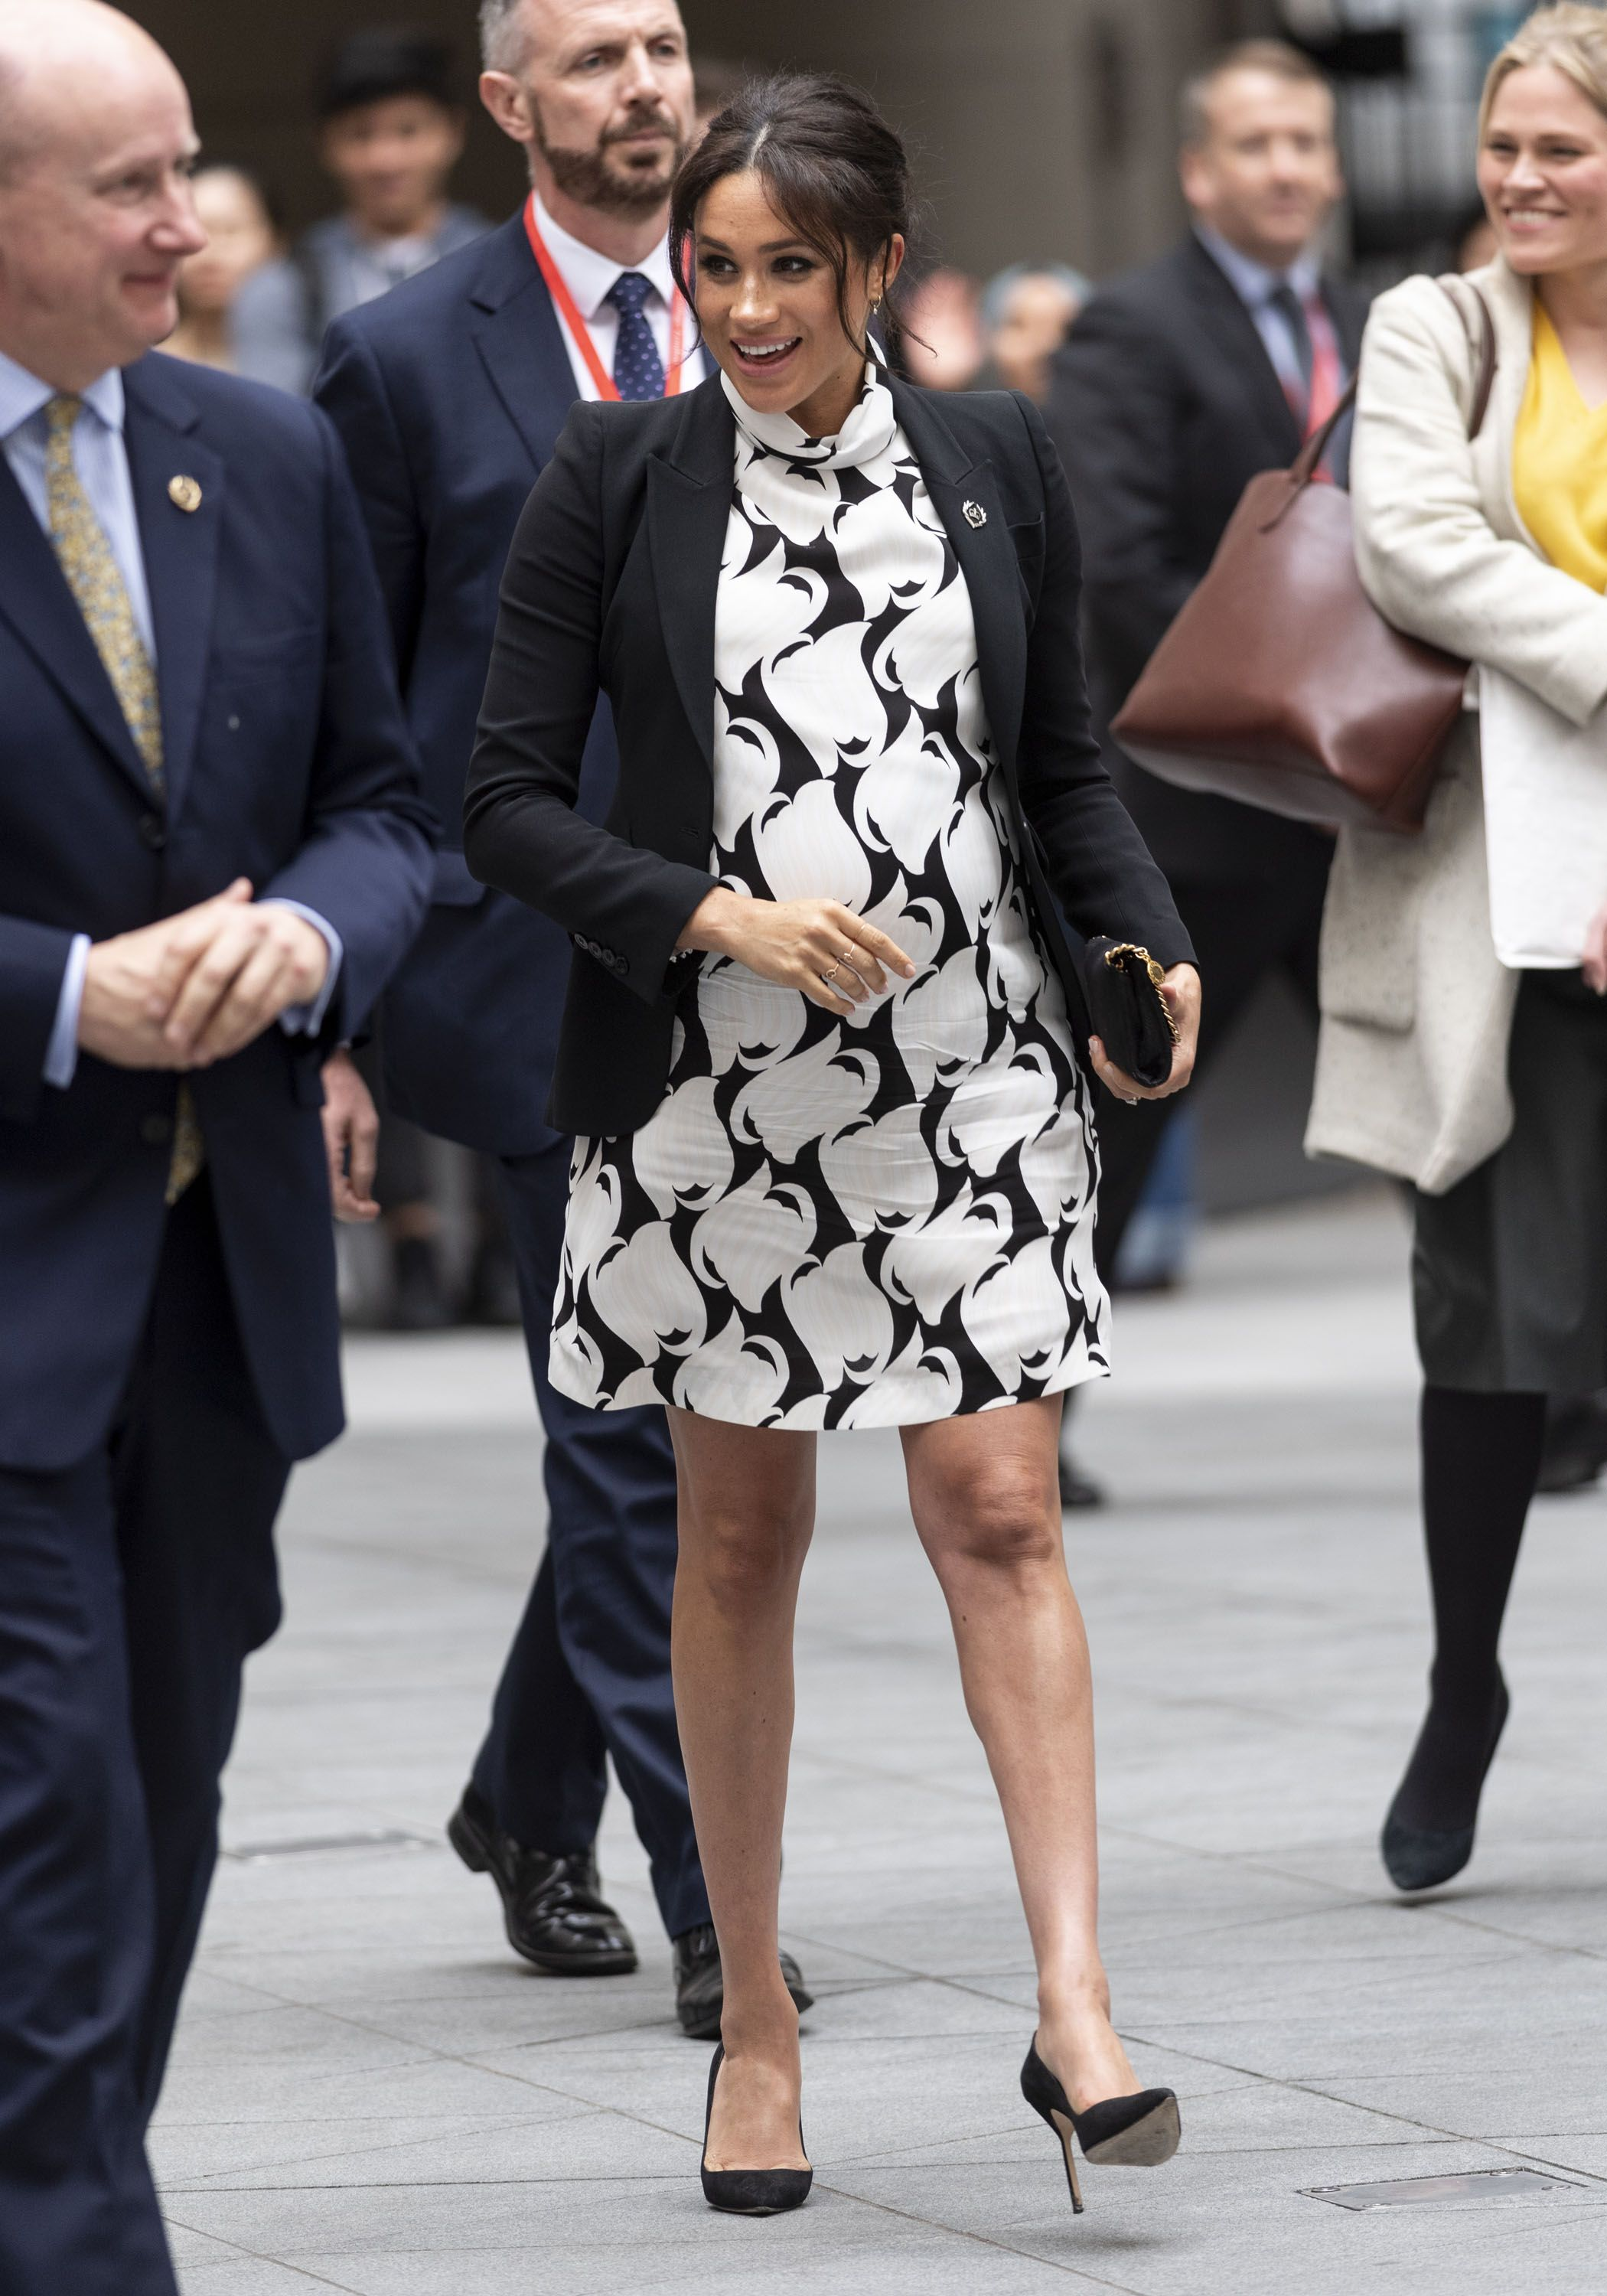 Meghan Markle Style Photos Of Meghan Markle S Best Fashion Moments